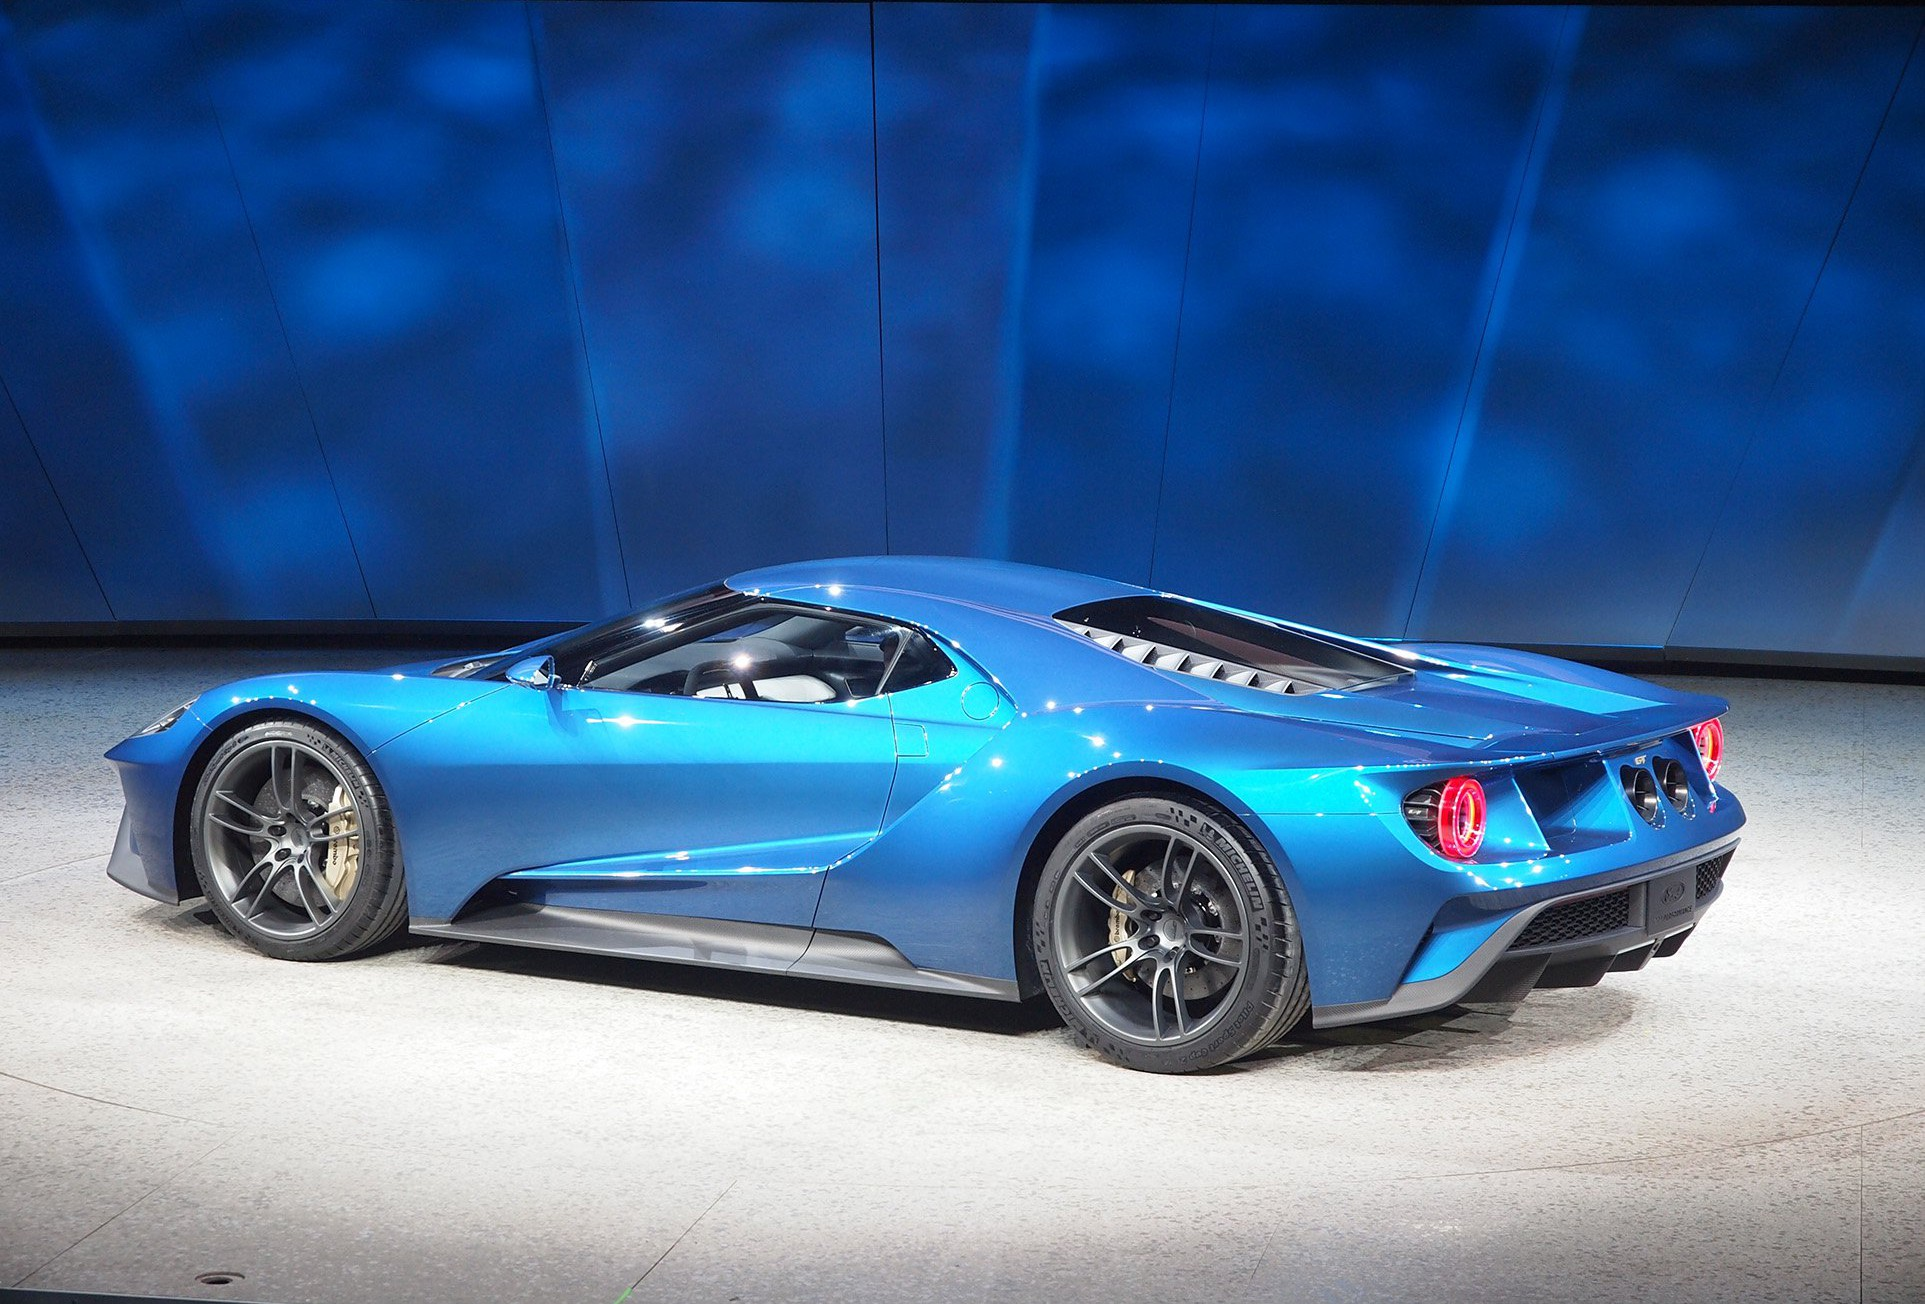 You Have to Apply to Own This Badass Ford Supercar